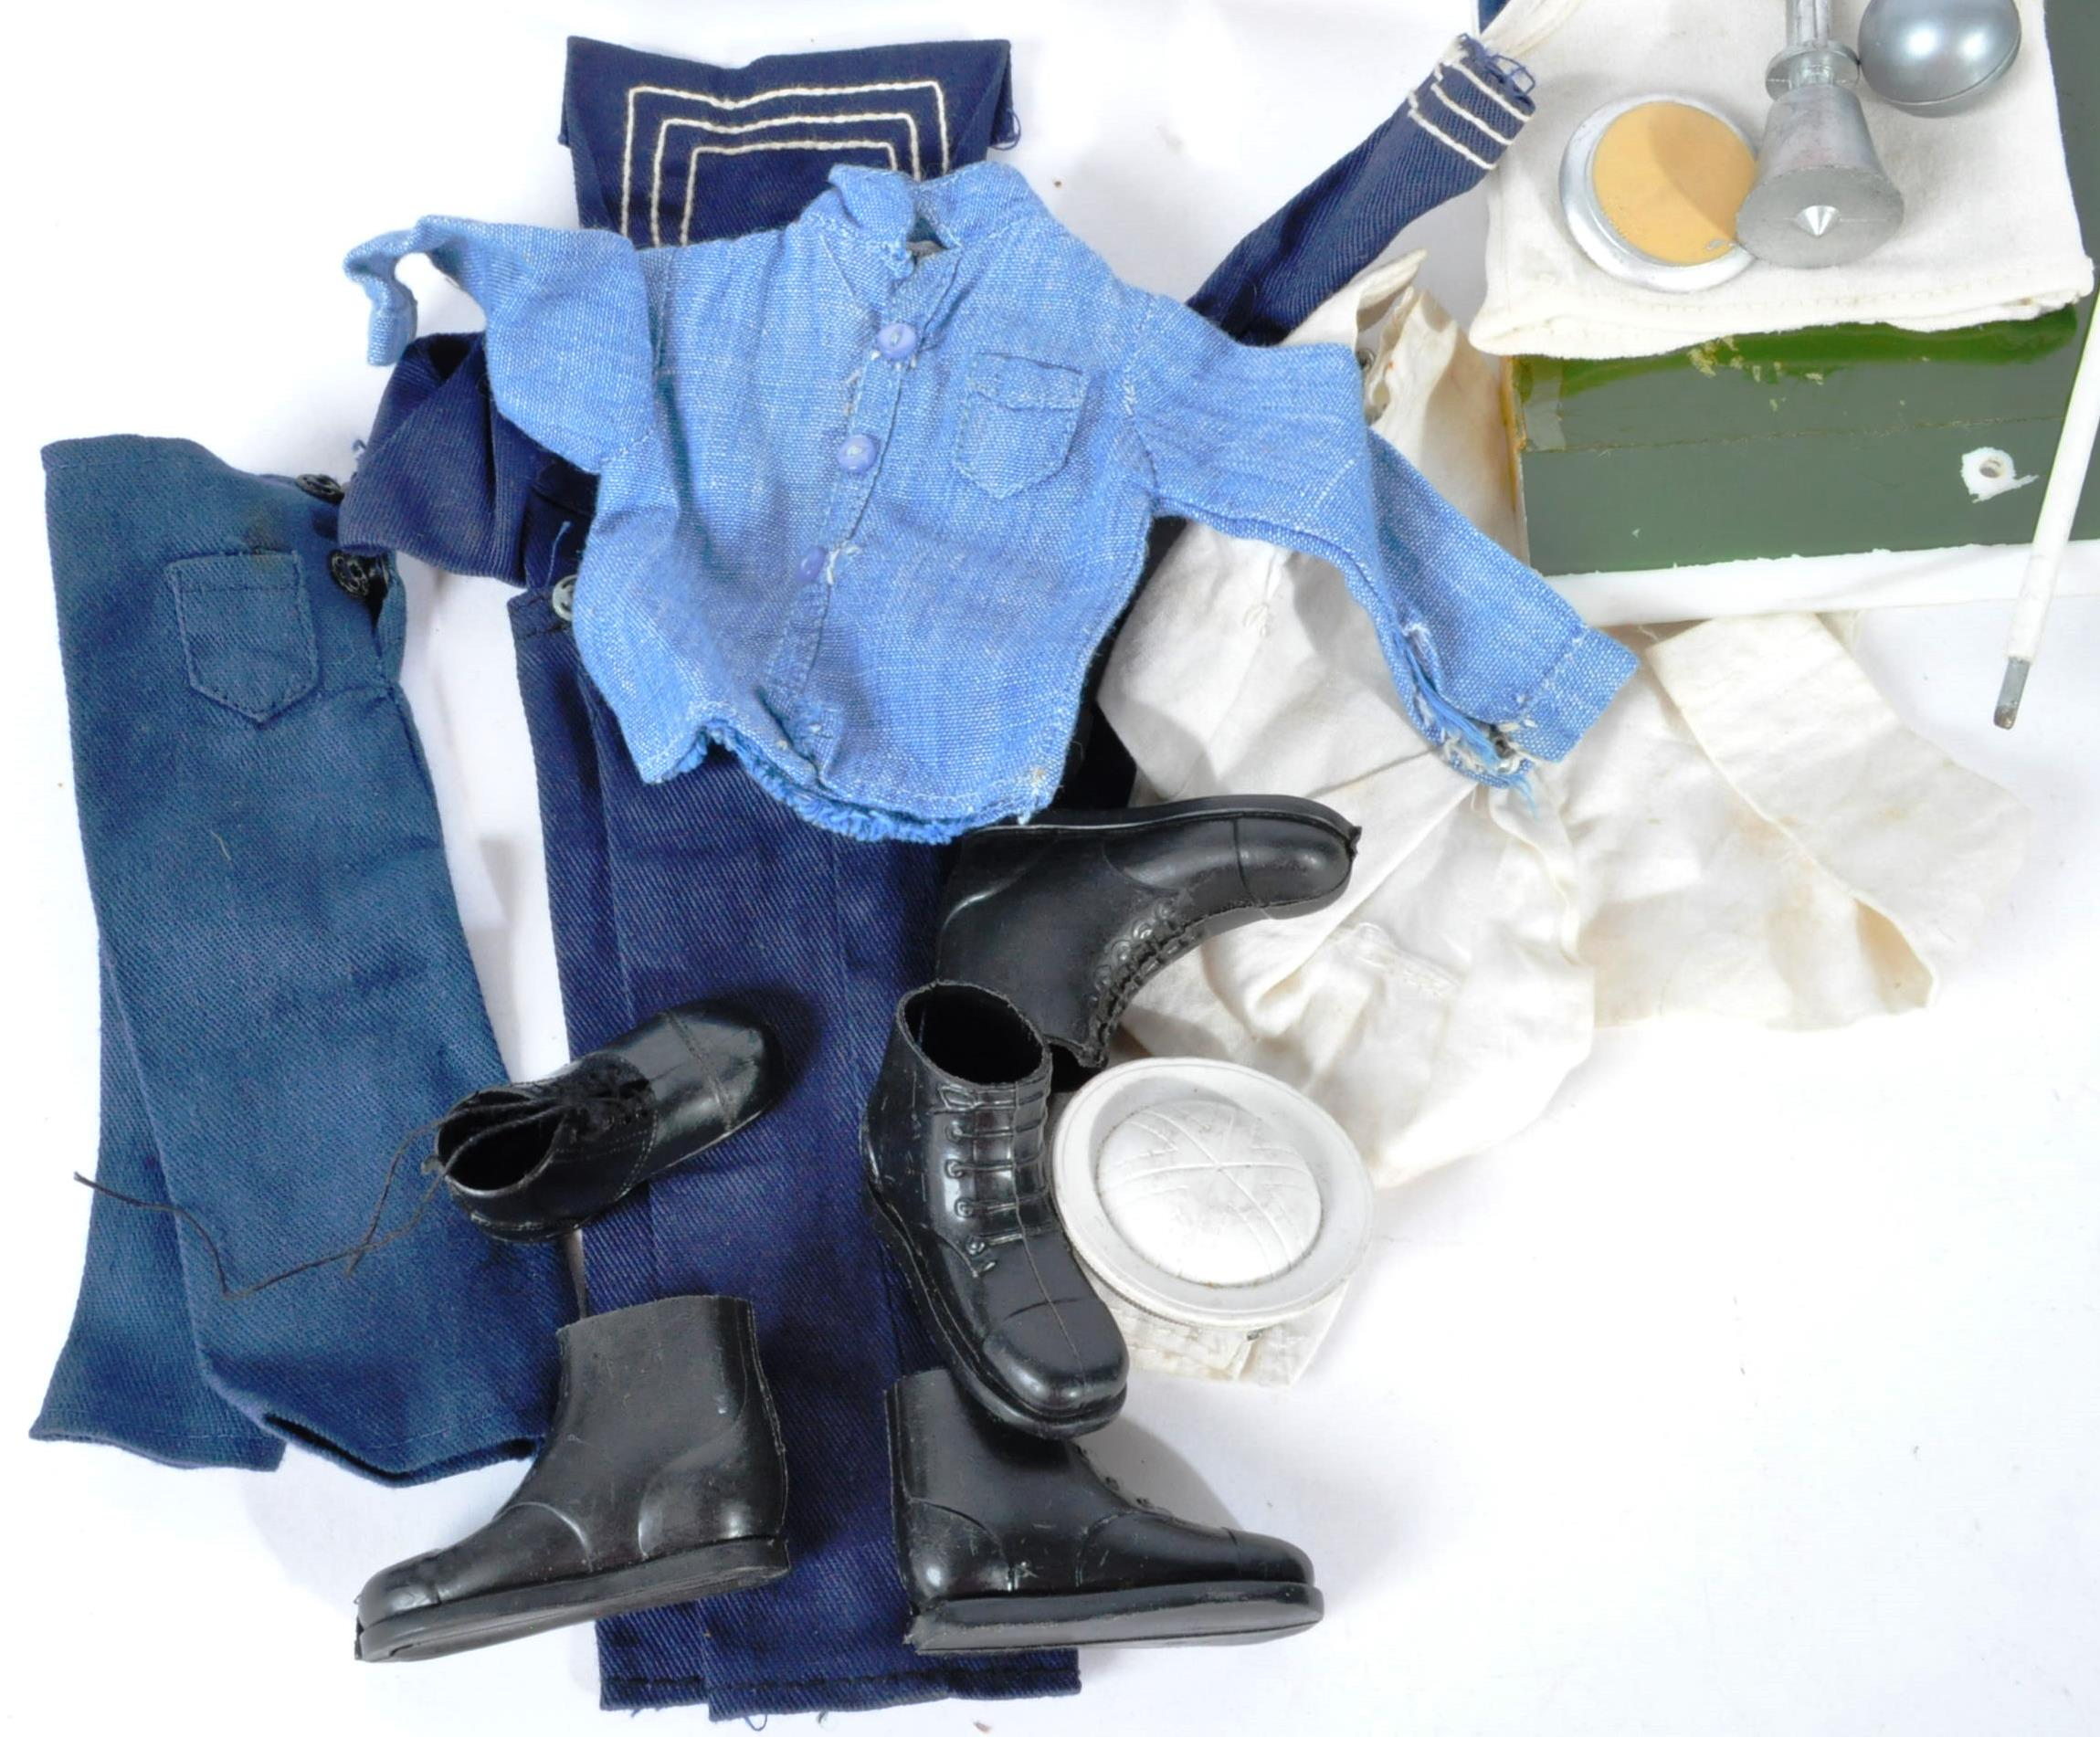 ACTION MAN - COLLECTION OF VINTAGE PALITOY UNIFORMS & FIGURE - Image 5 of 9